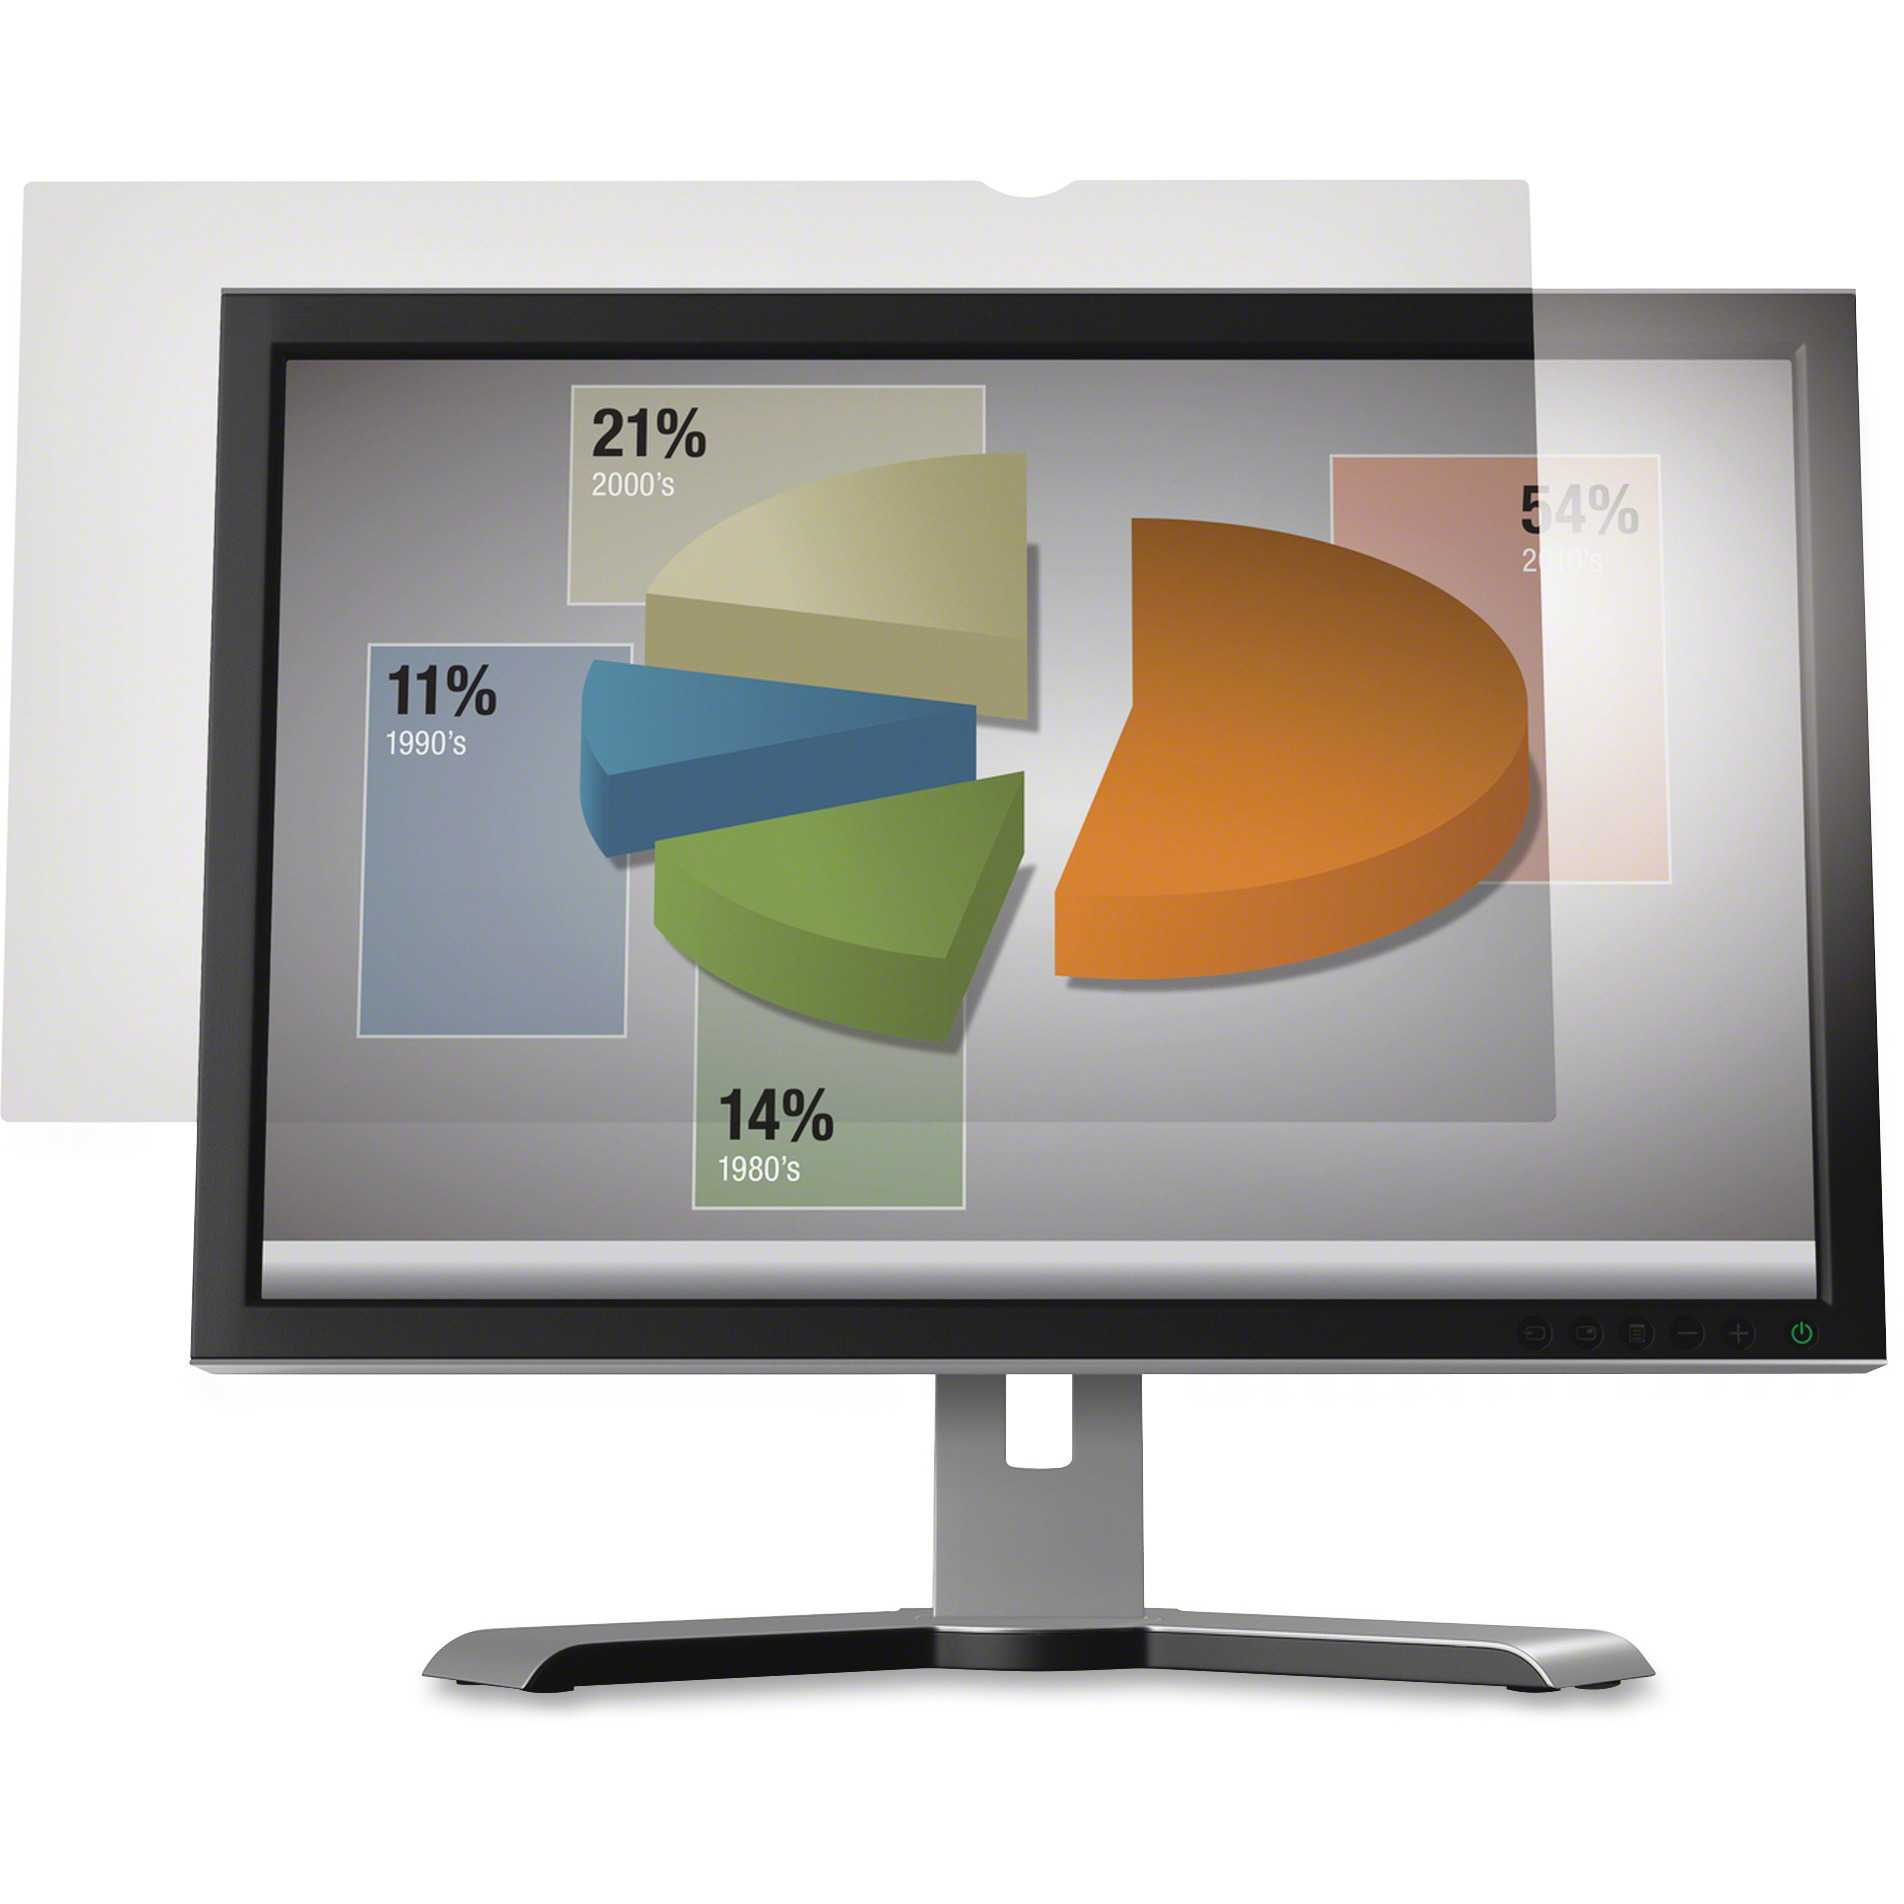 3M AG19.5W9 Anti-Glare Filter for Widescreen Desktop LCD Monitor 19.5'